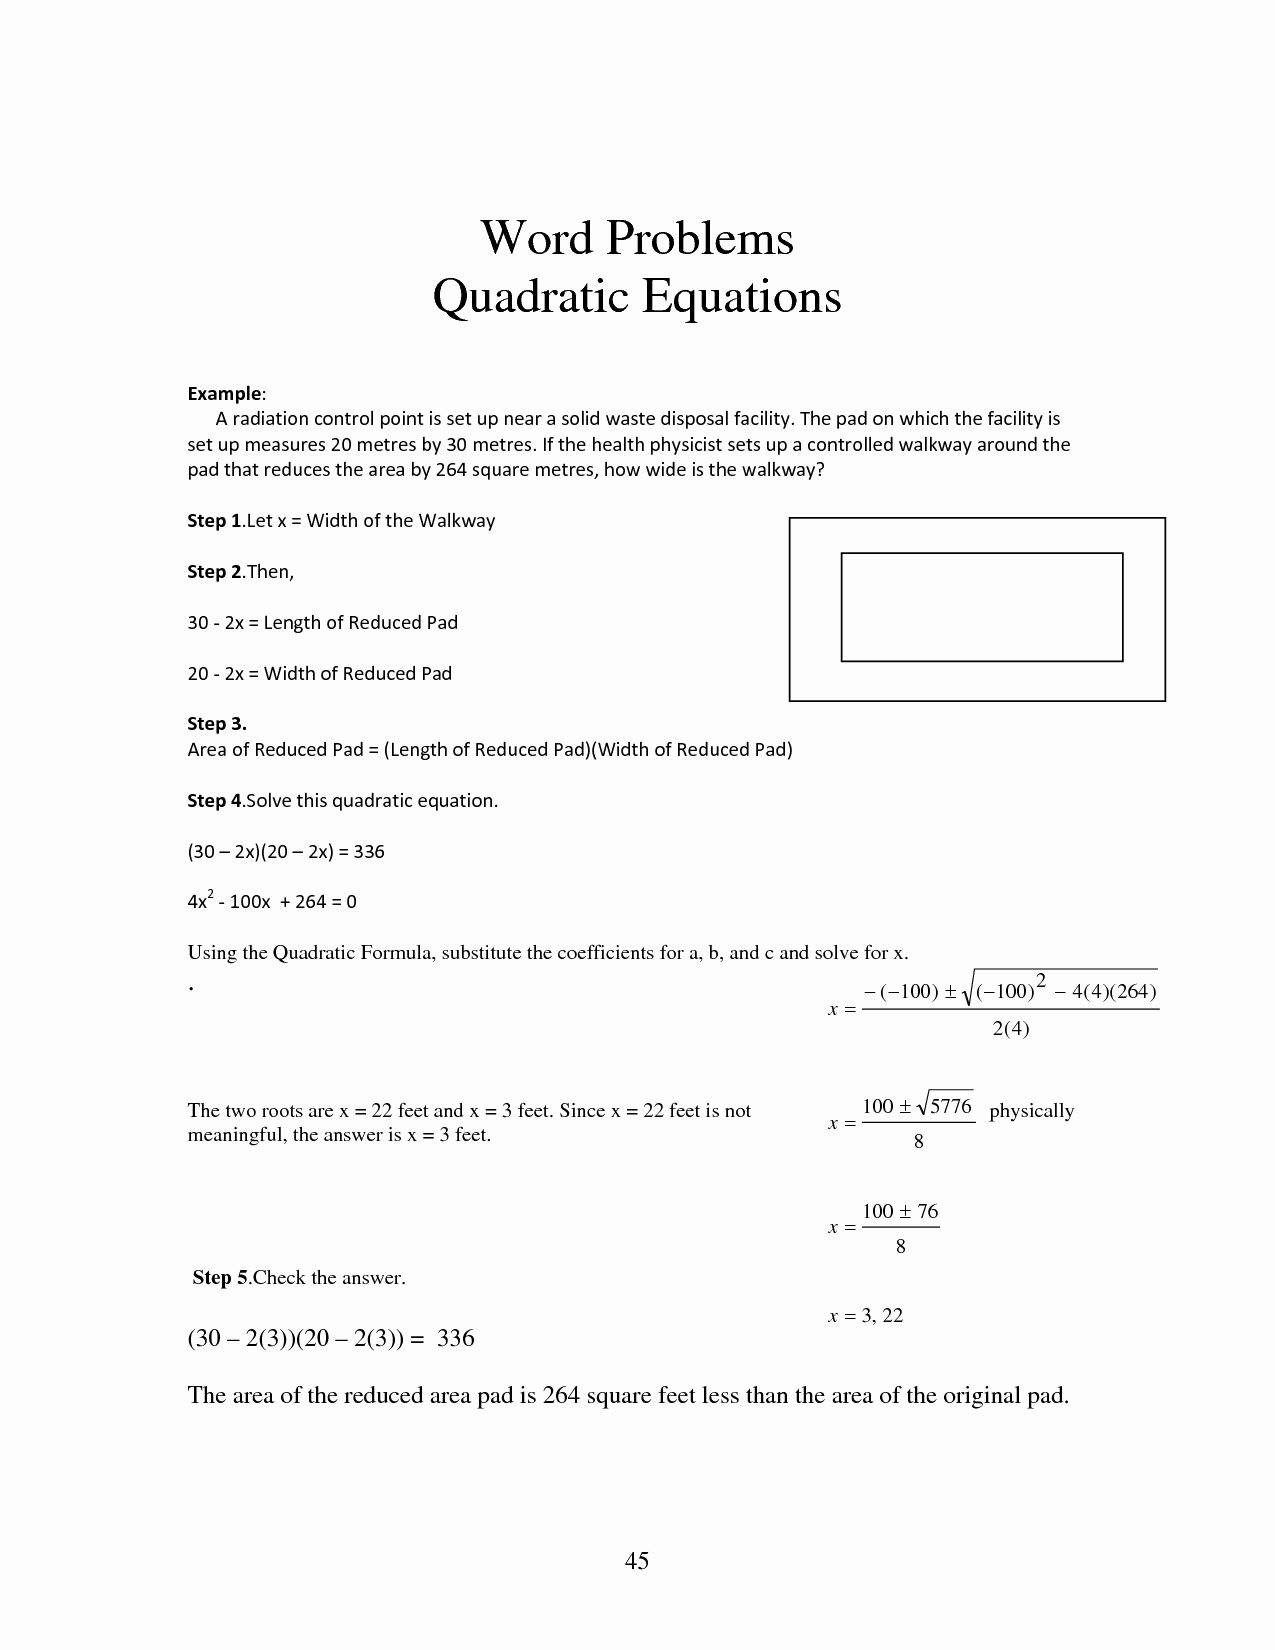 Quadratic Equations Word Problems Worksheet Elegant Quadratic Equation Word Problems Worksheet